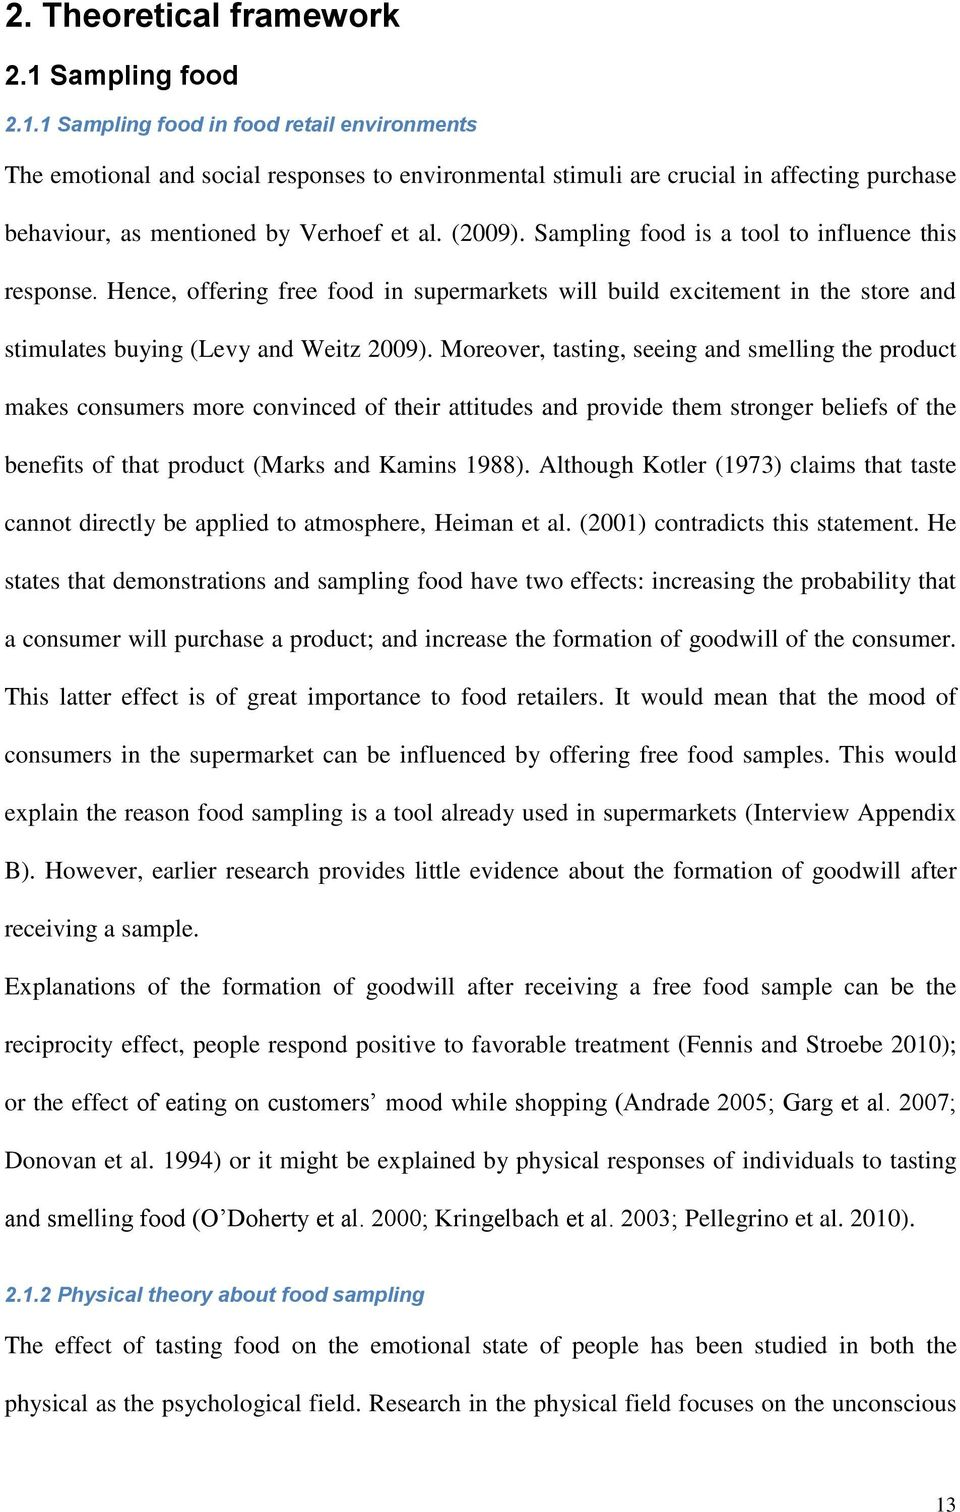 (2009). Sampling food is a tool to influence this response. Hence, offering free food in supermarkets will build excitement in the store and stimulates buying (Levy and Weitz 2009).